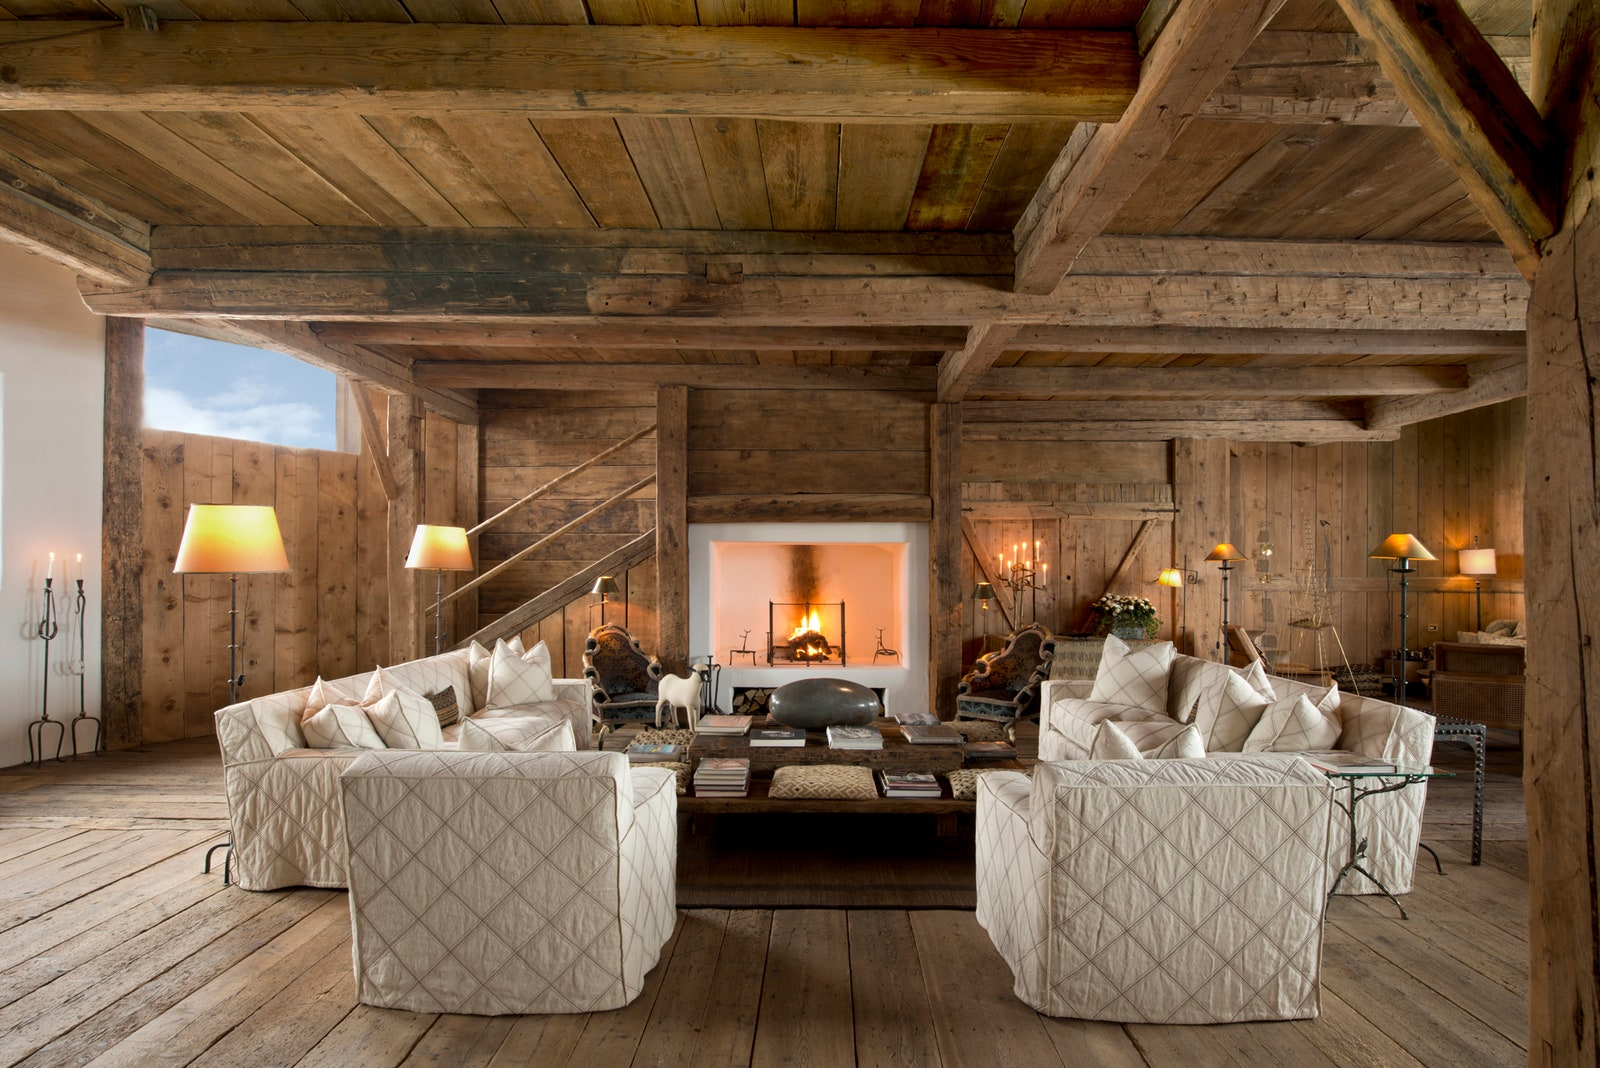 Jacques Grange The Best Design Projects By This Top Interior Designer_10